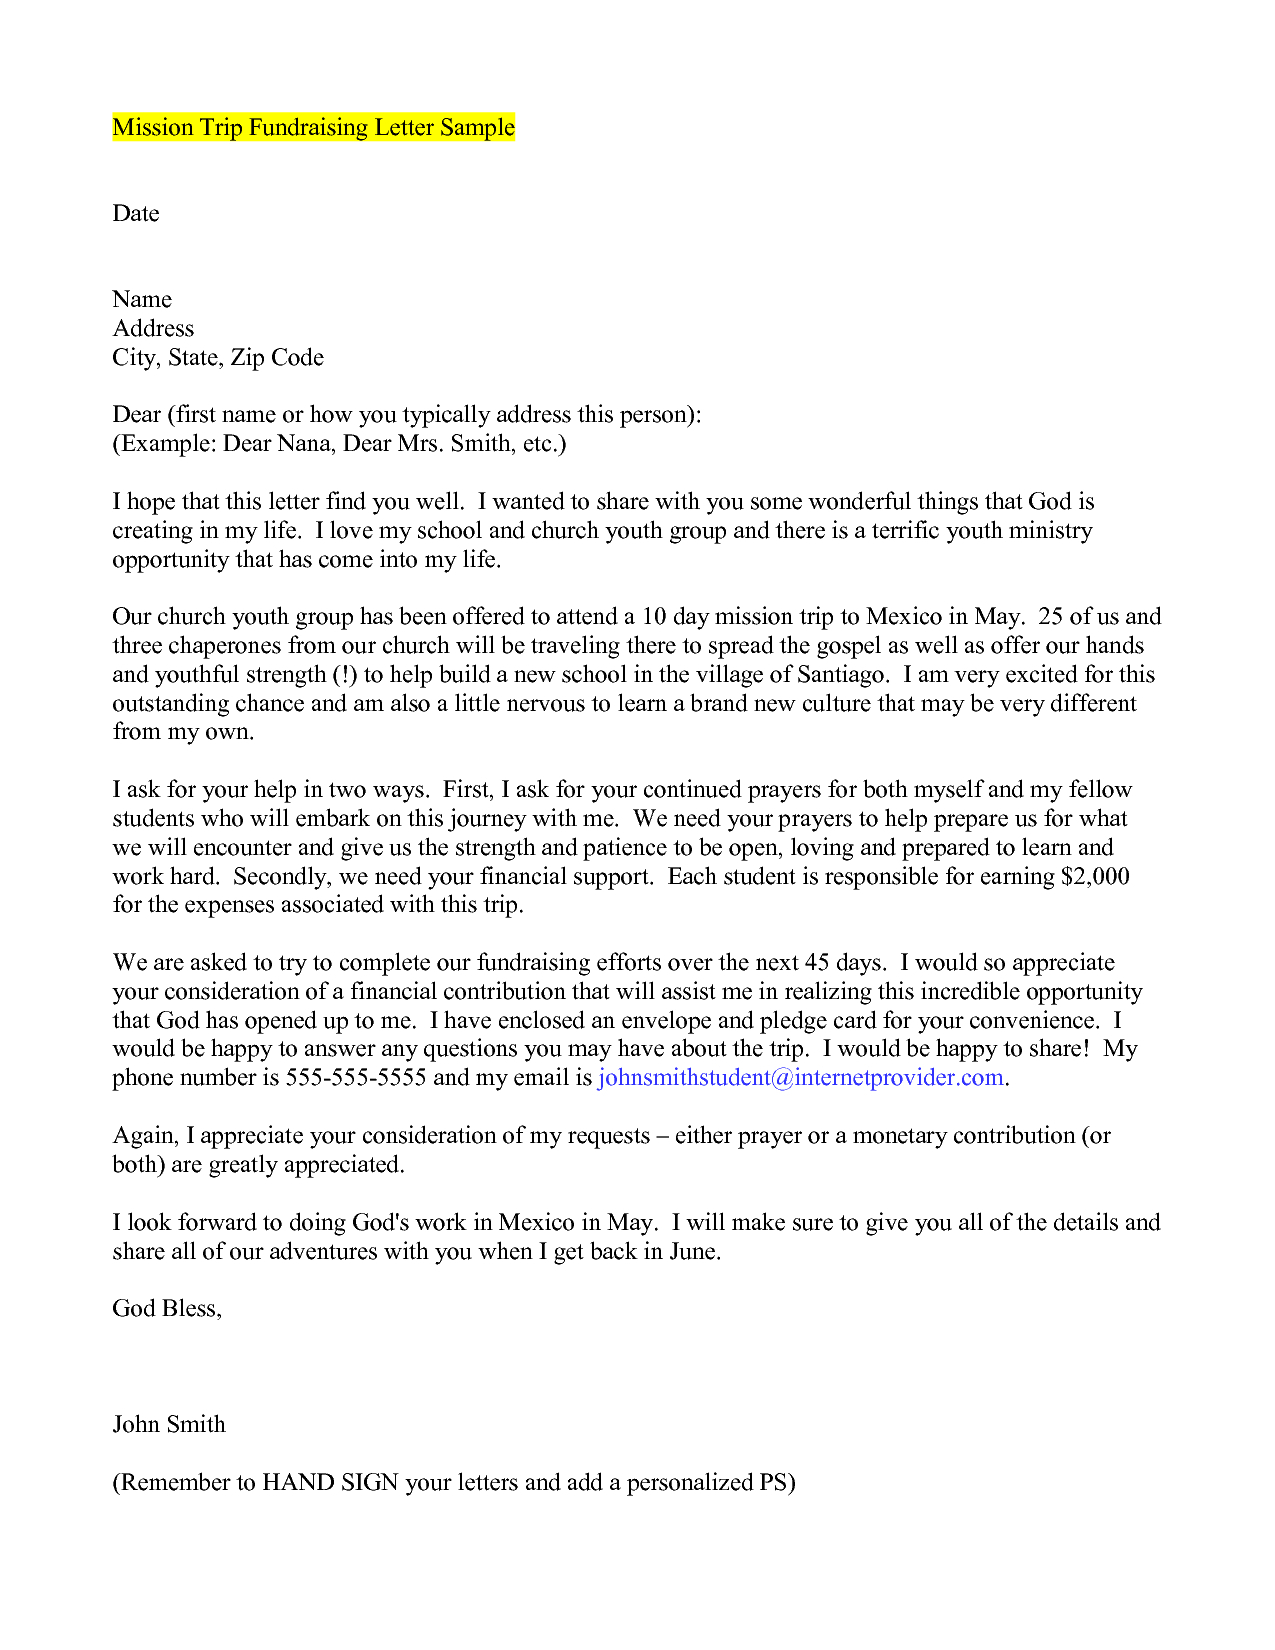 missionary support letter template example-mission support letter template 15-c